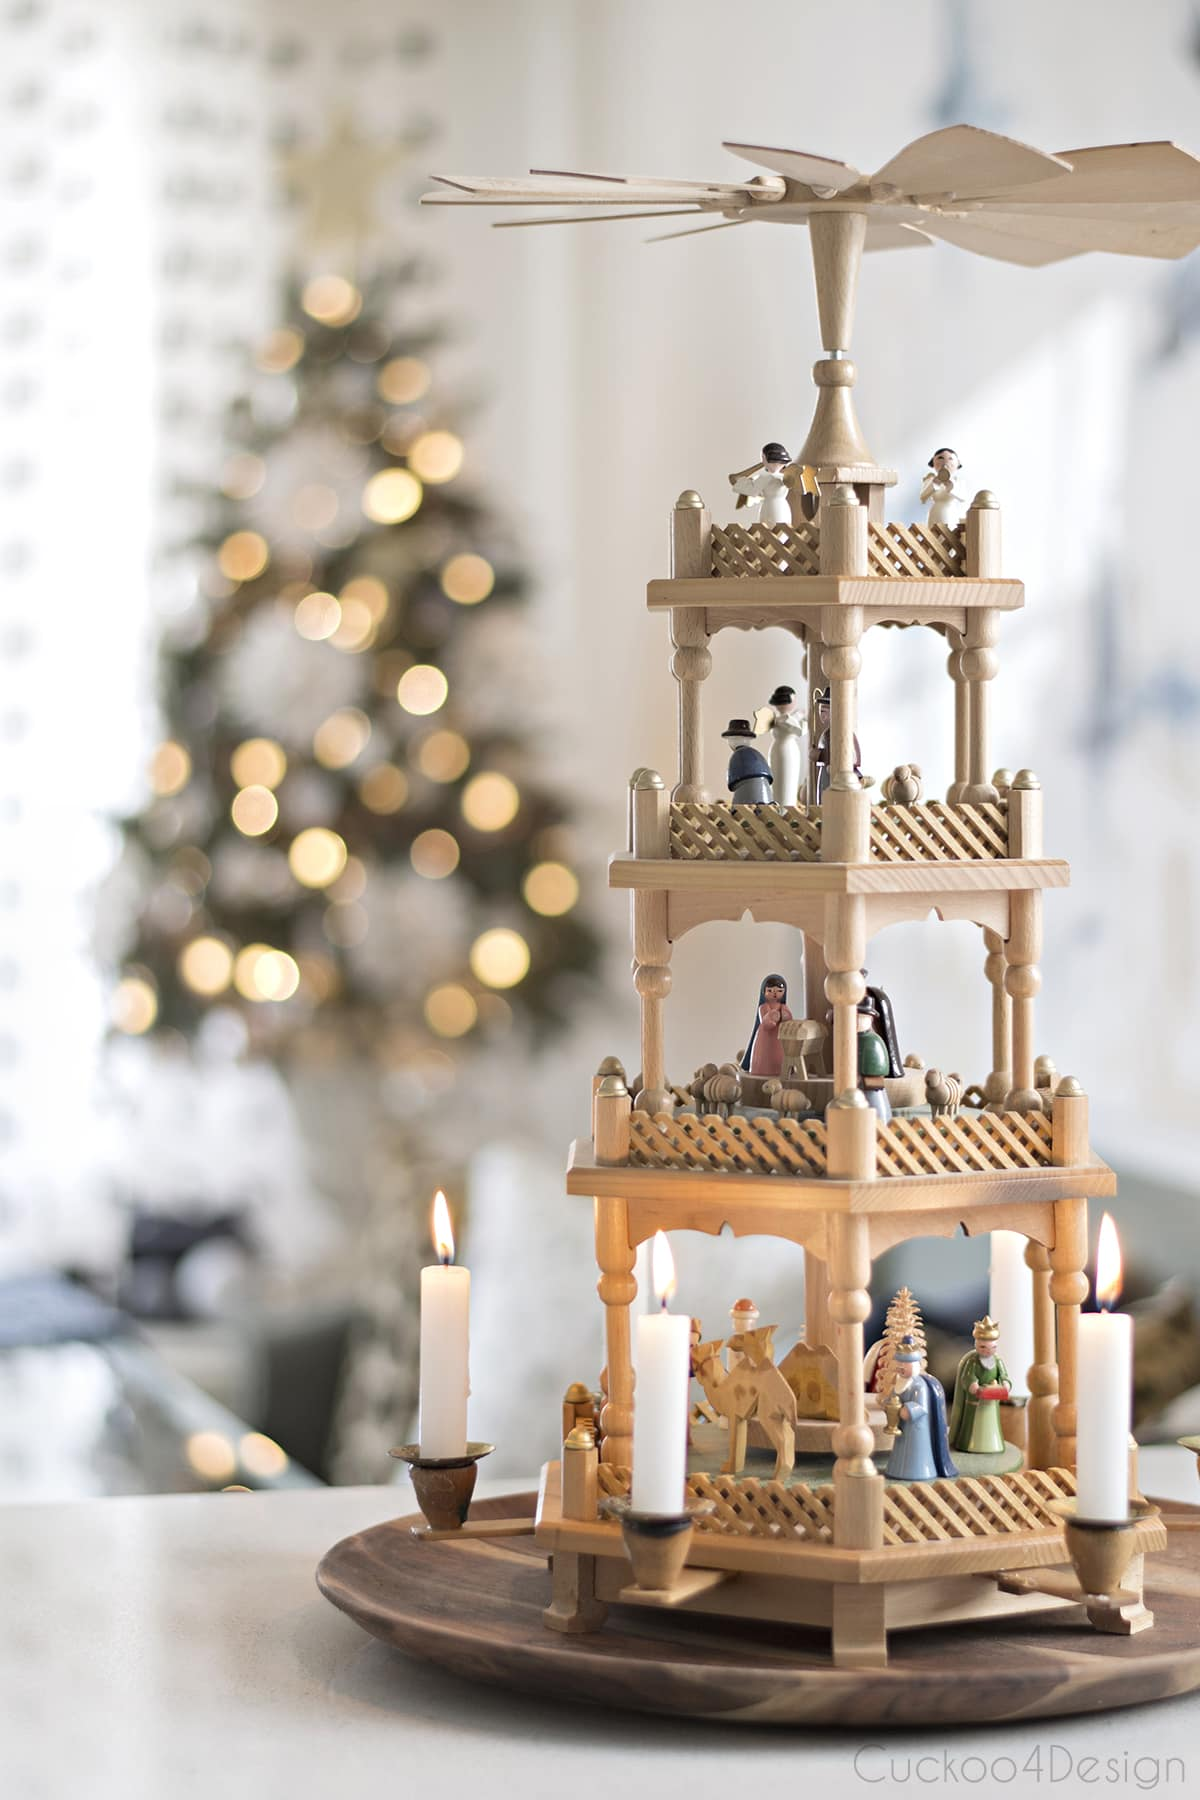 Friday Favorites: German Christmas Decorations | Cuckoo4Design